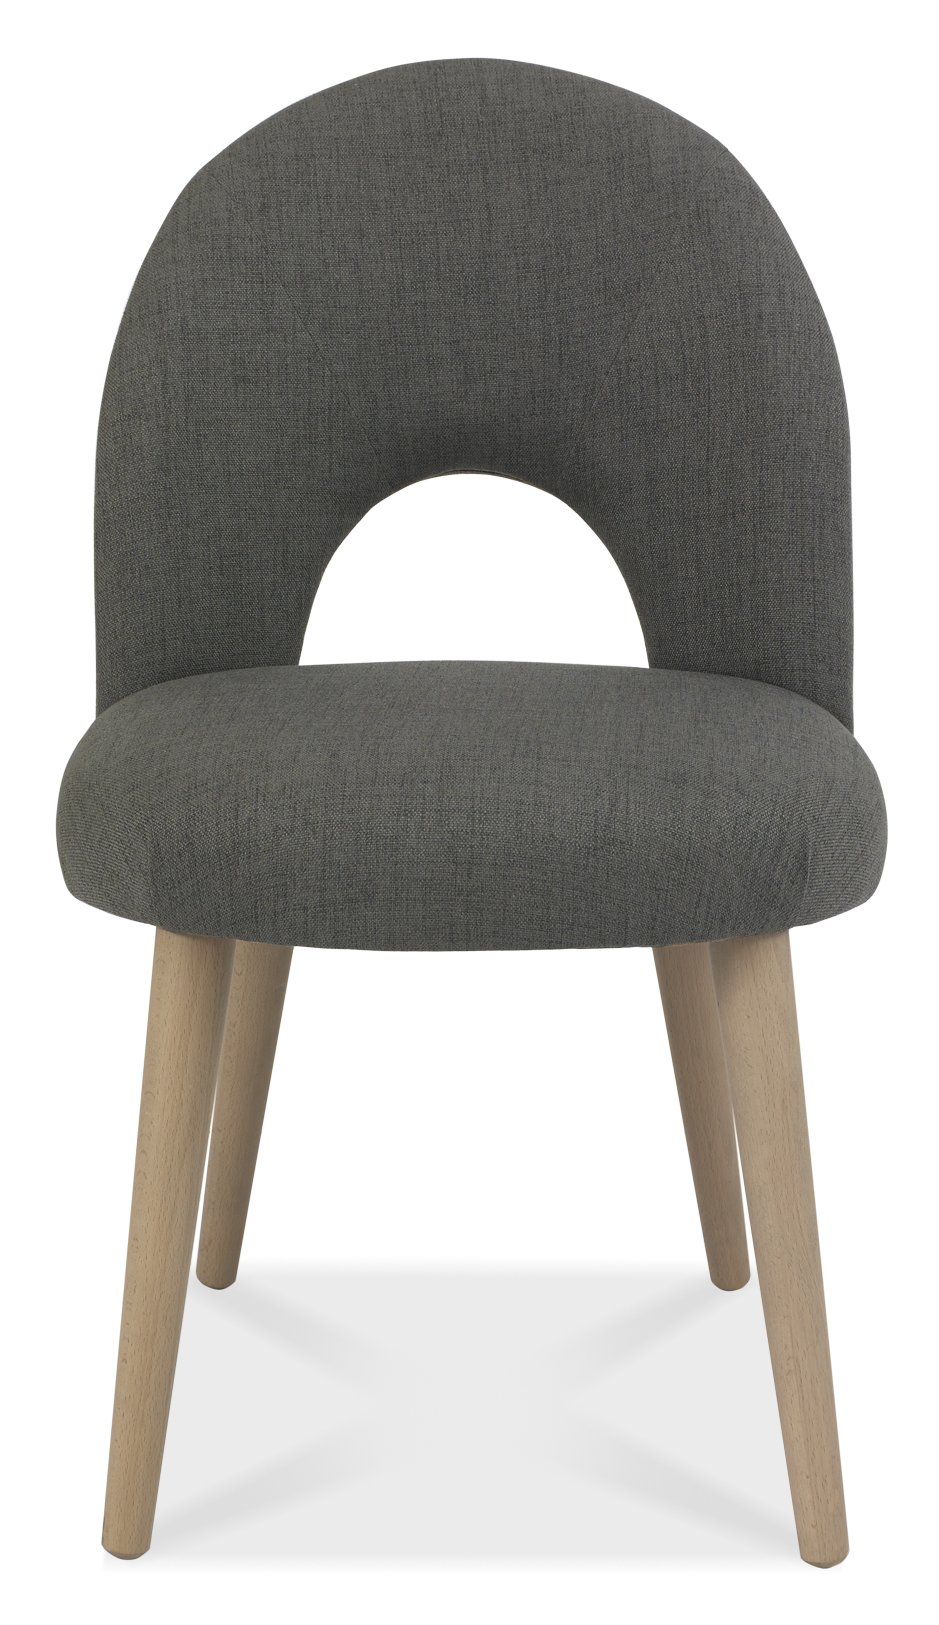 RETRO GREY FABRIC DINING CHAIR - FRONT DETAIL.